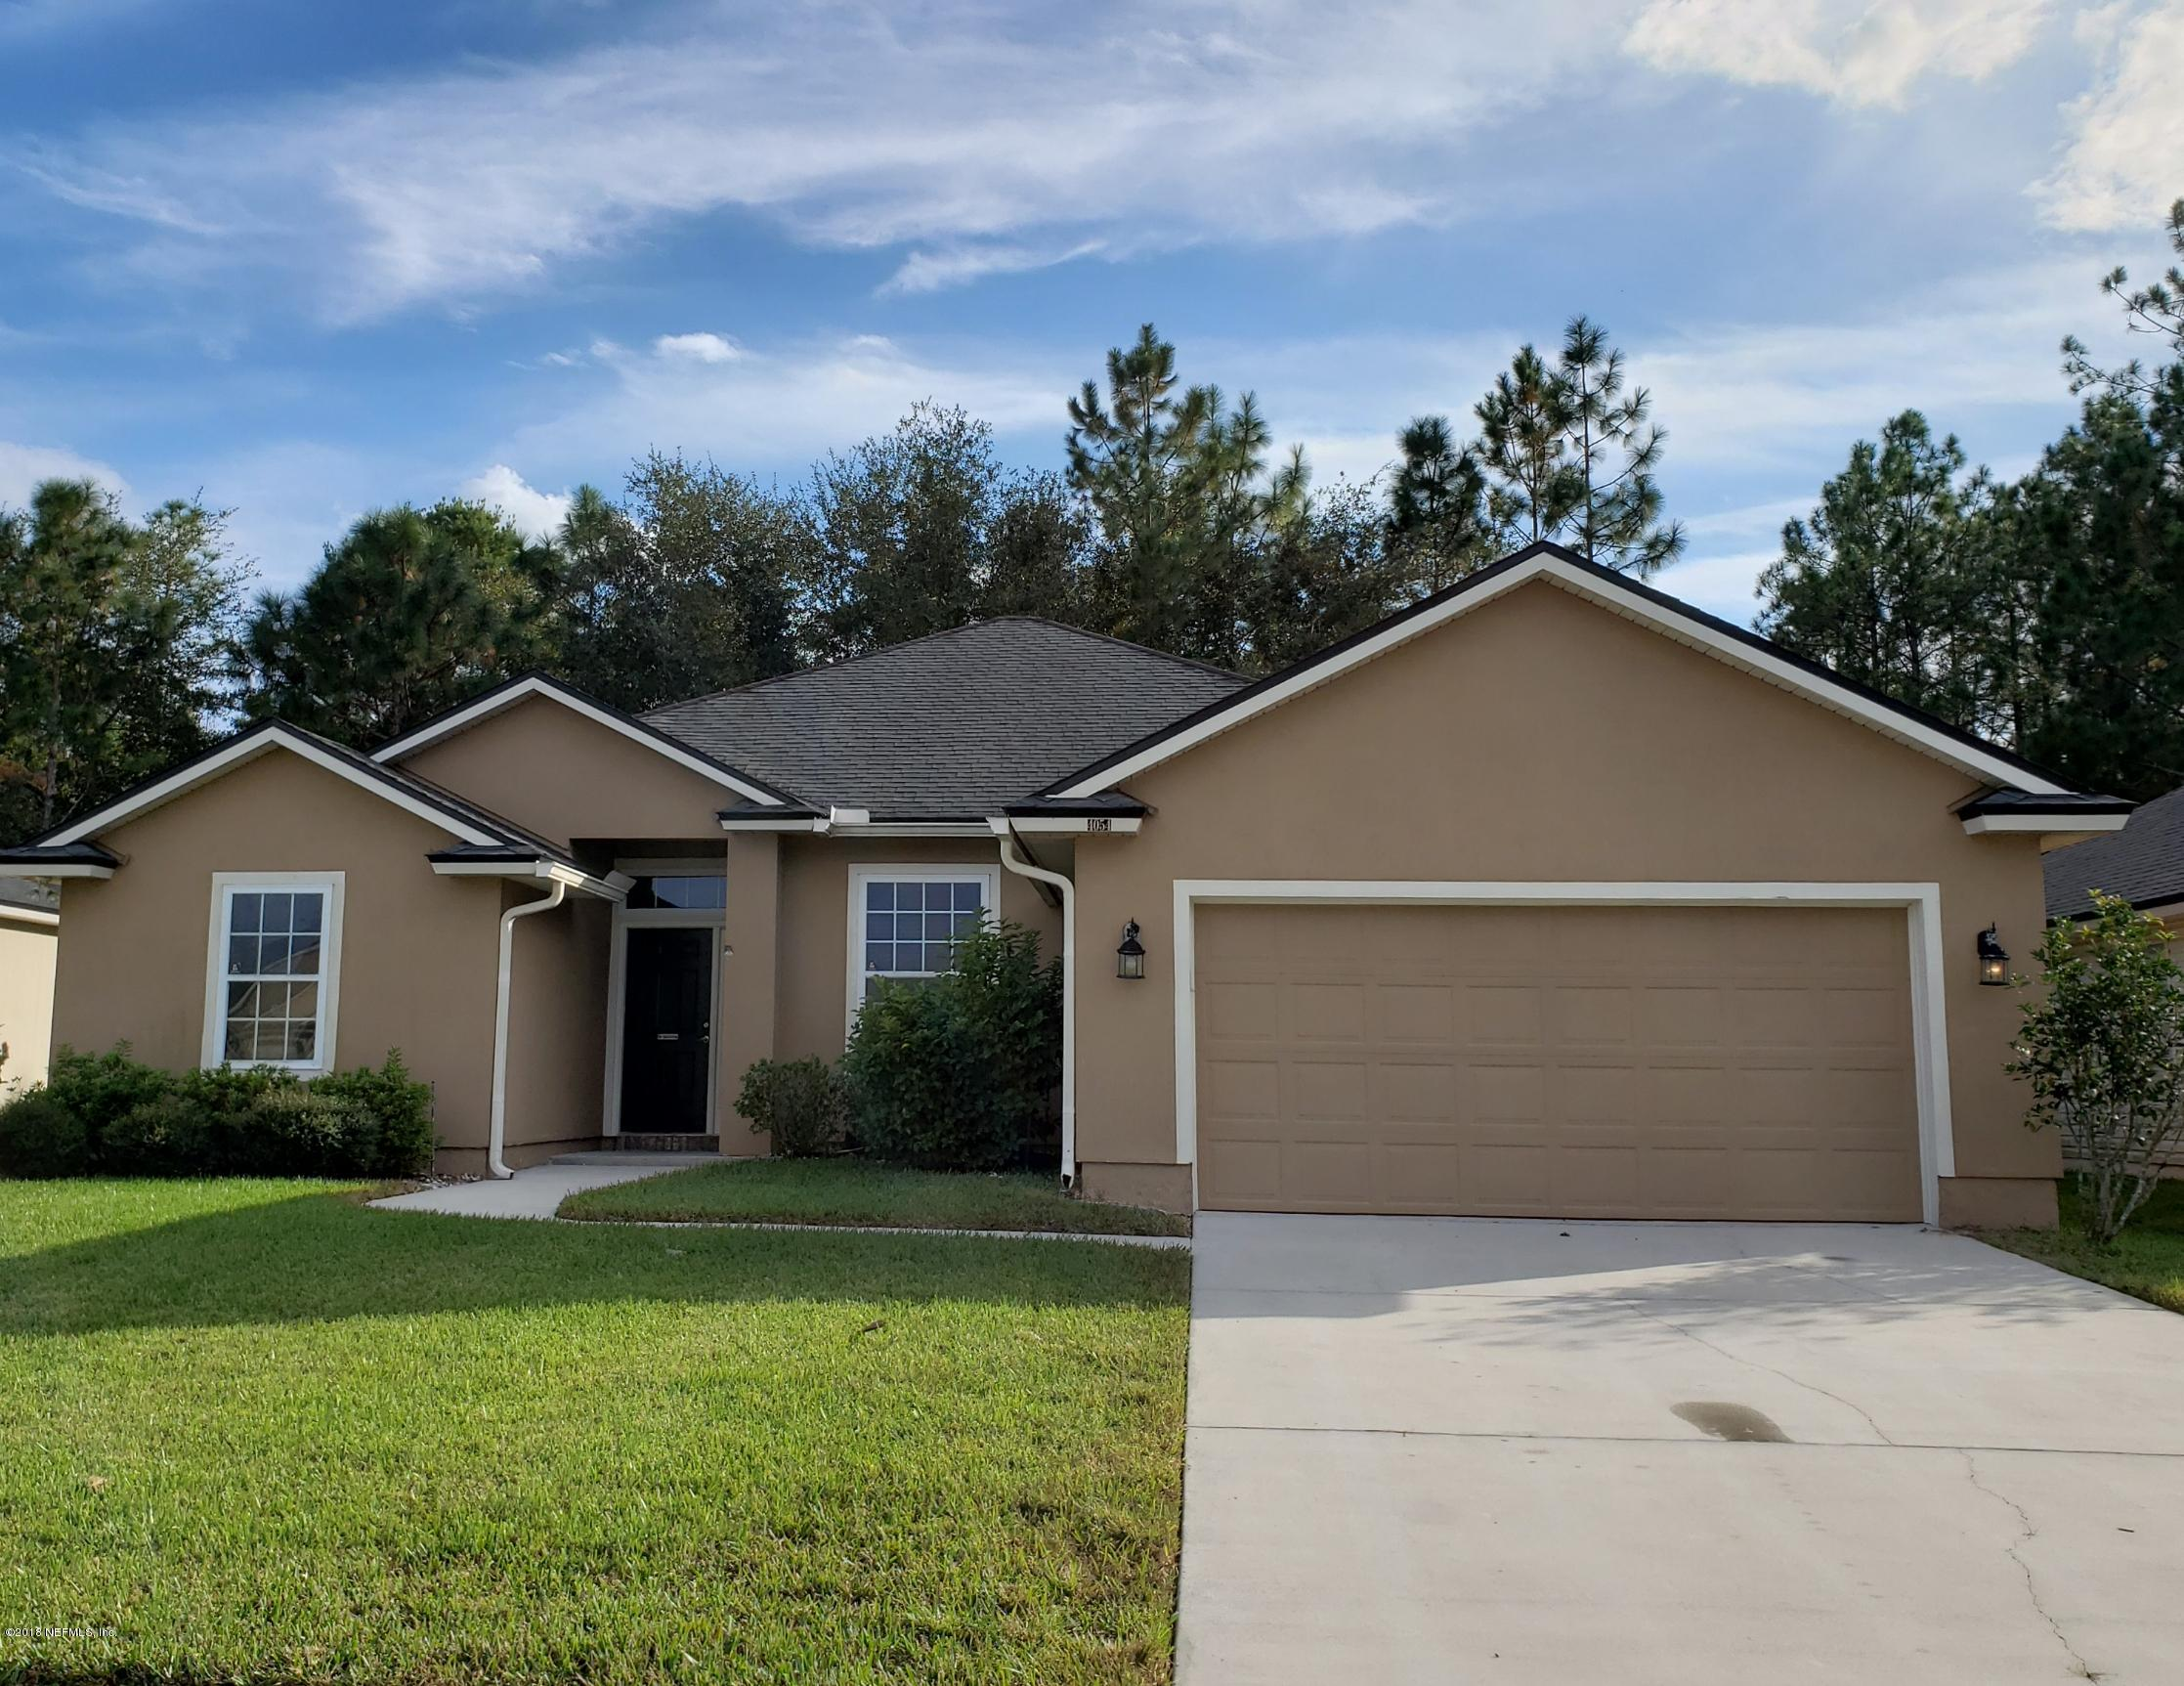 Photo of 4054 TRAIL RIDGE, MIDDLEBURG, FL 32068